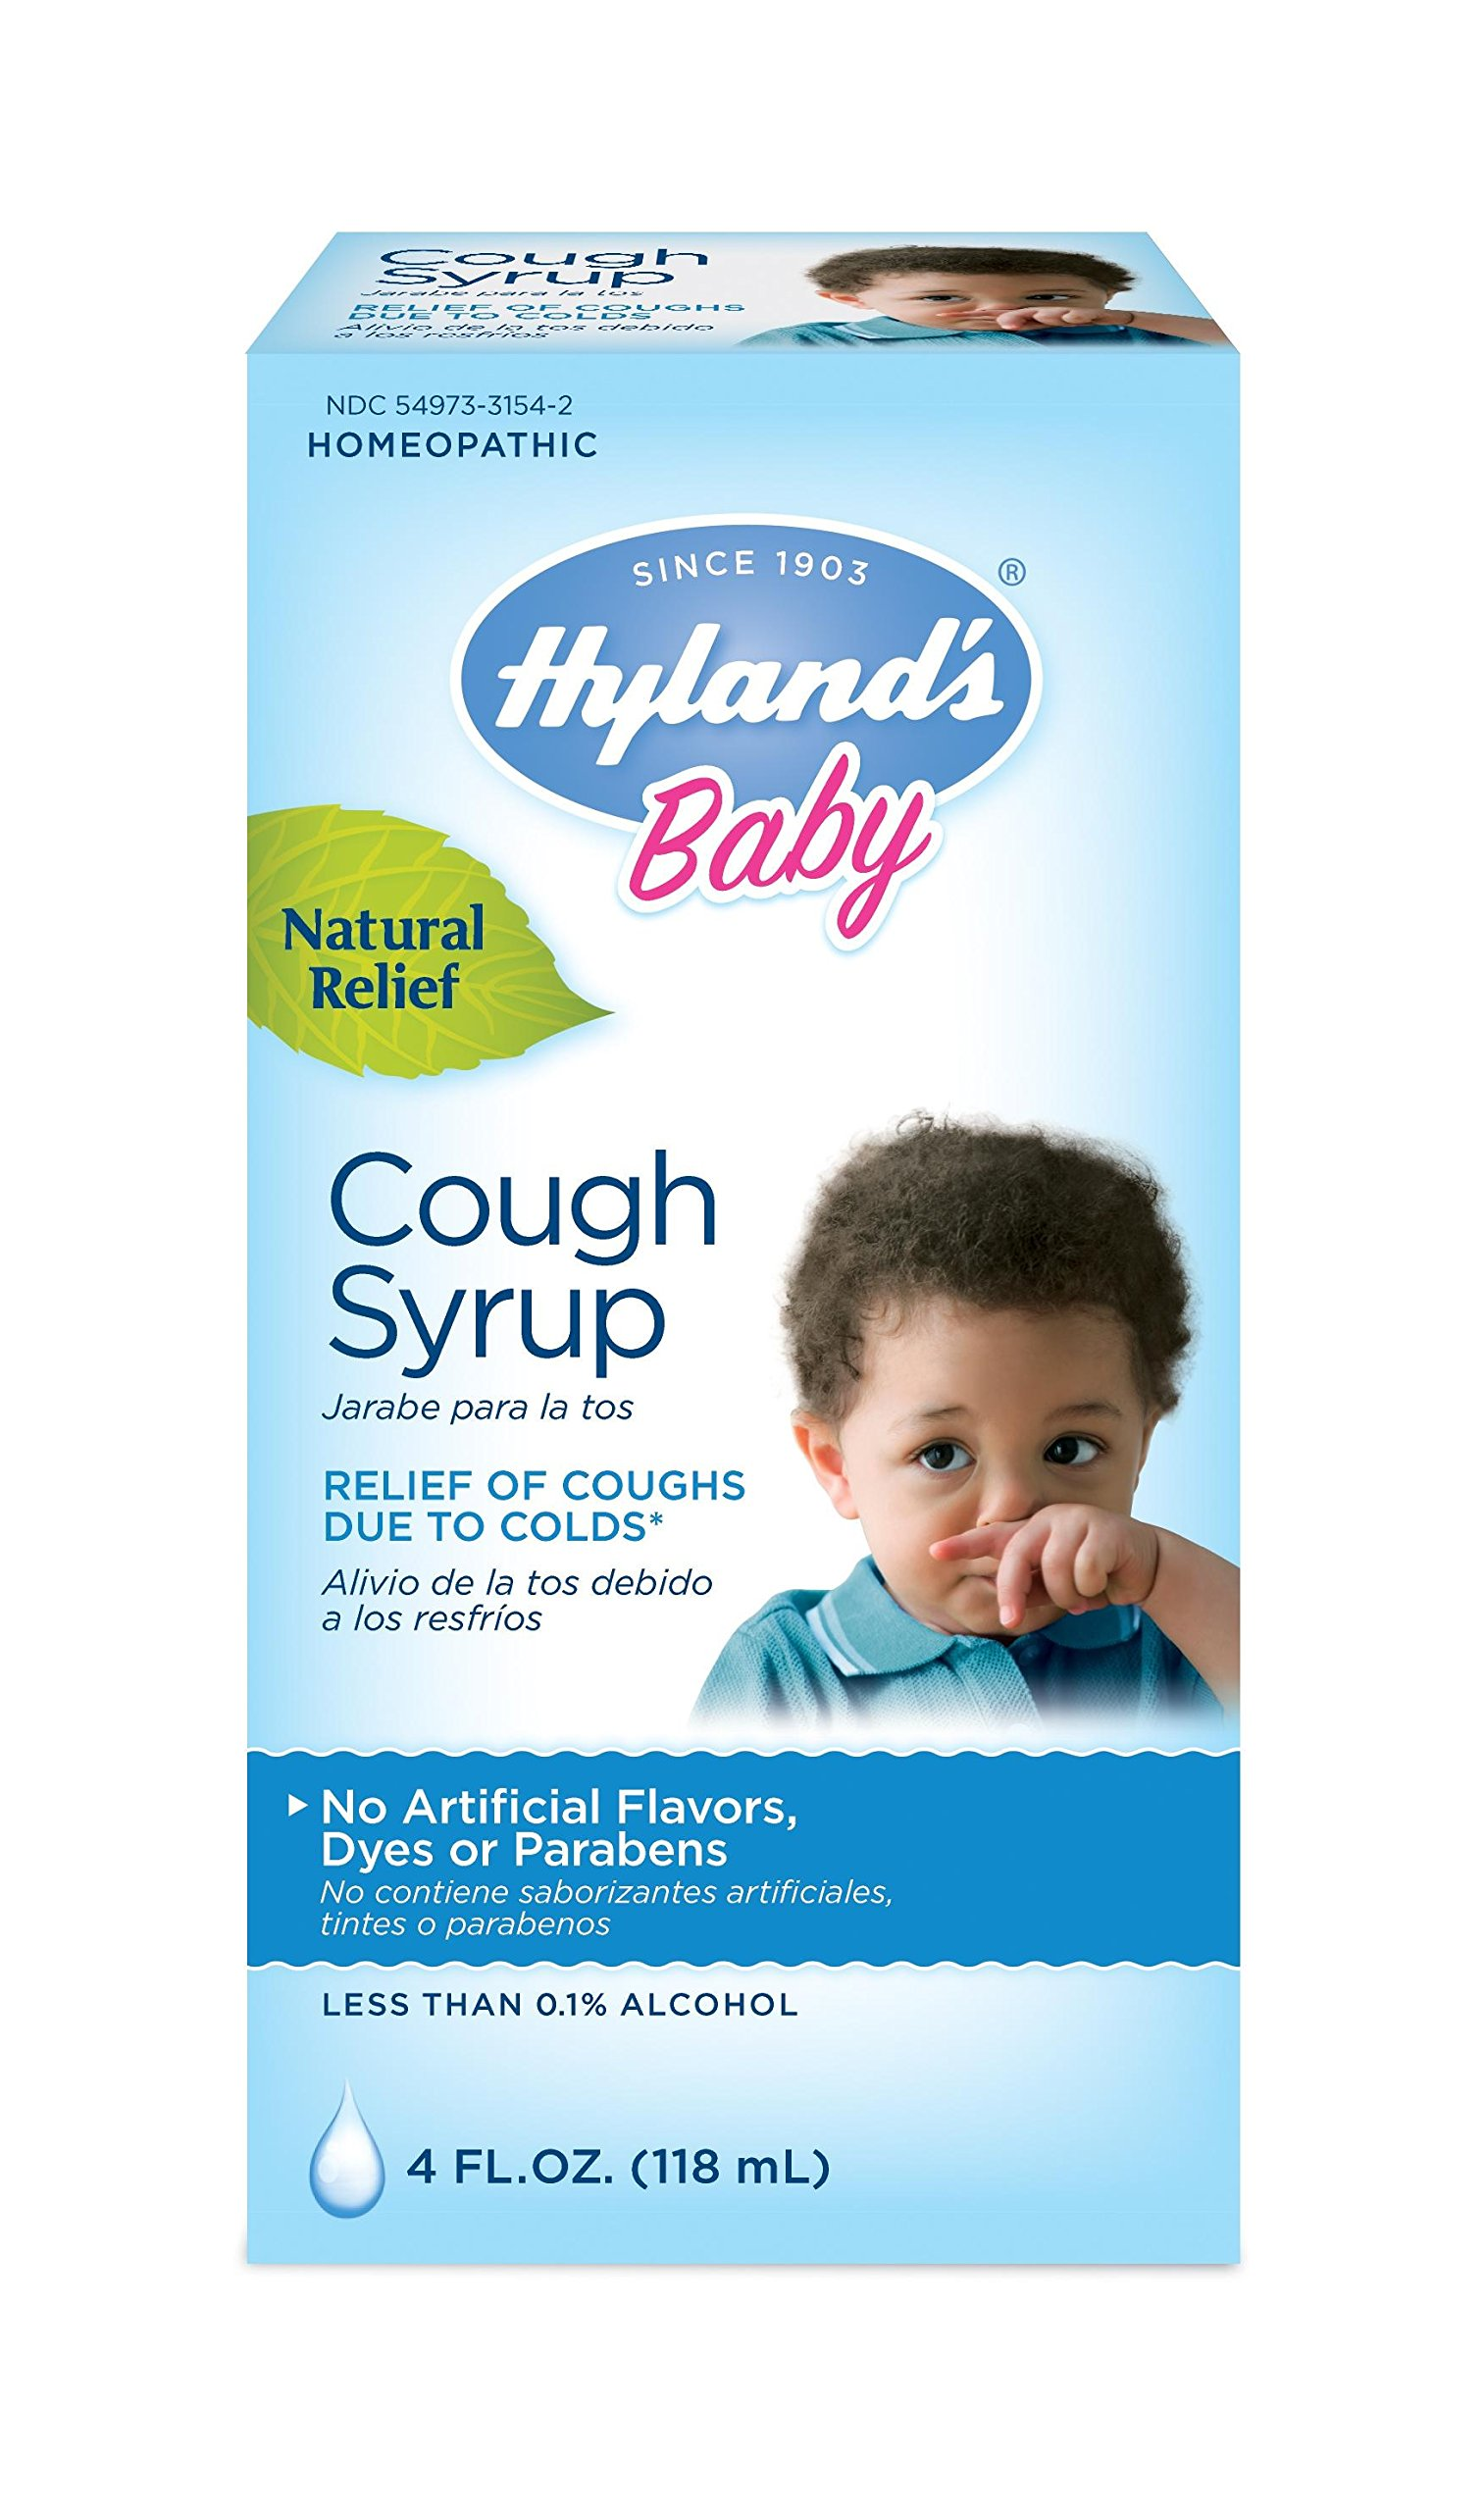 Hyland's Baby Natural Relief Cough Syrup, 4oz. Per Bottle (12 Pack)